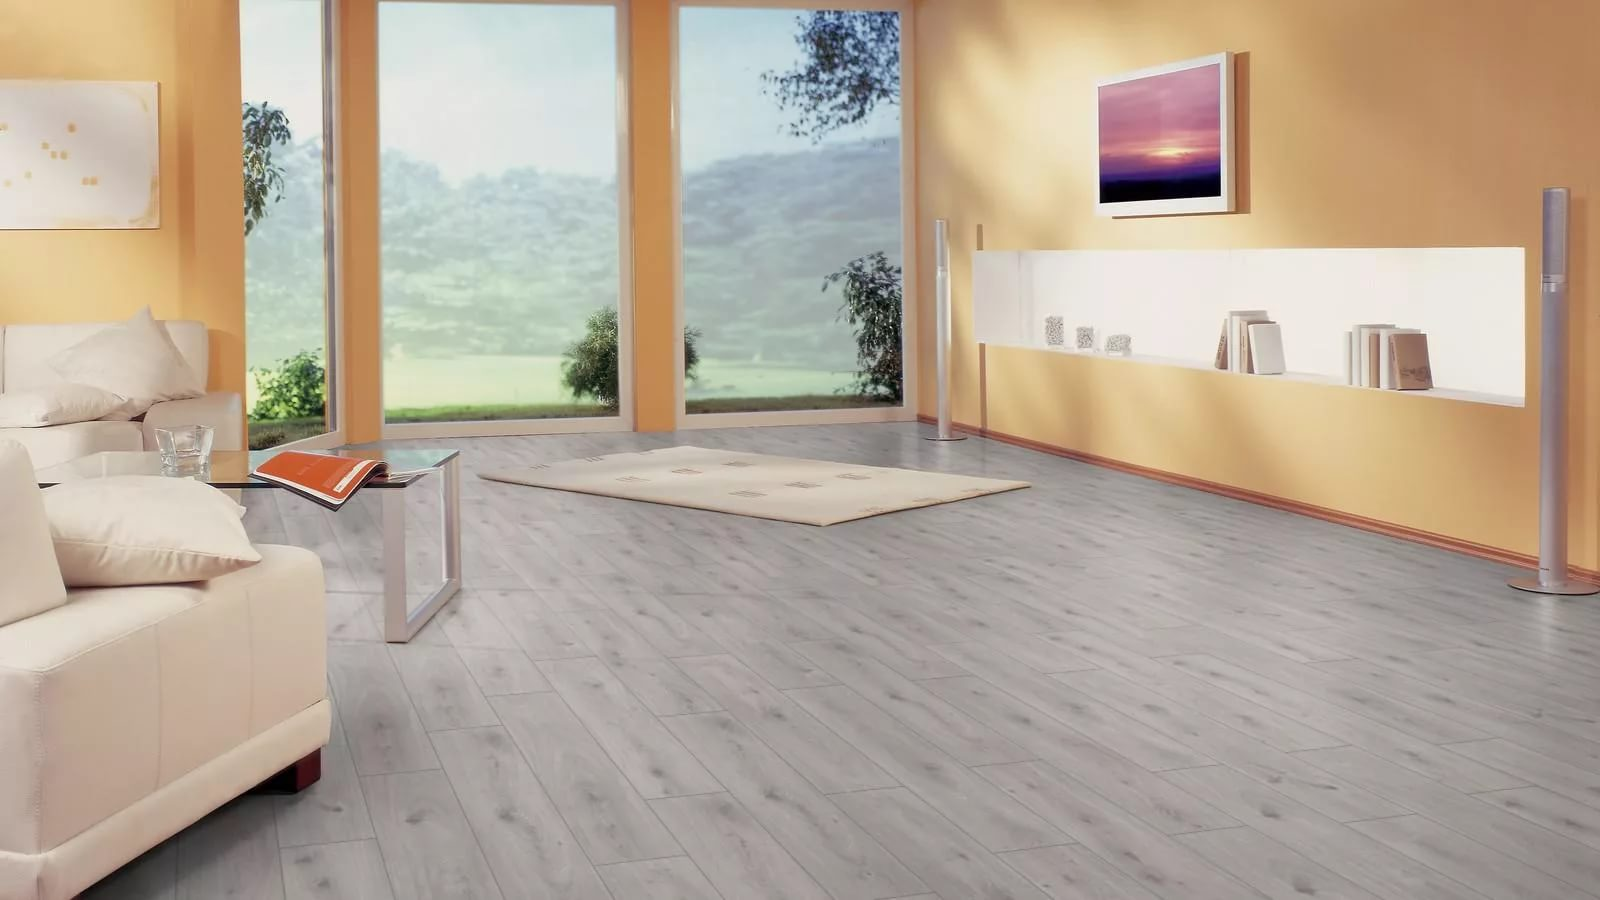 Laminate flooring looks like tile